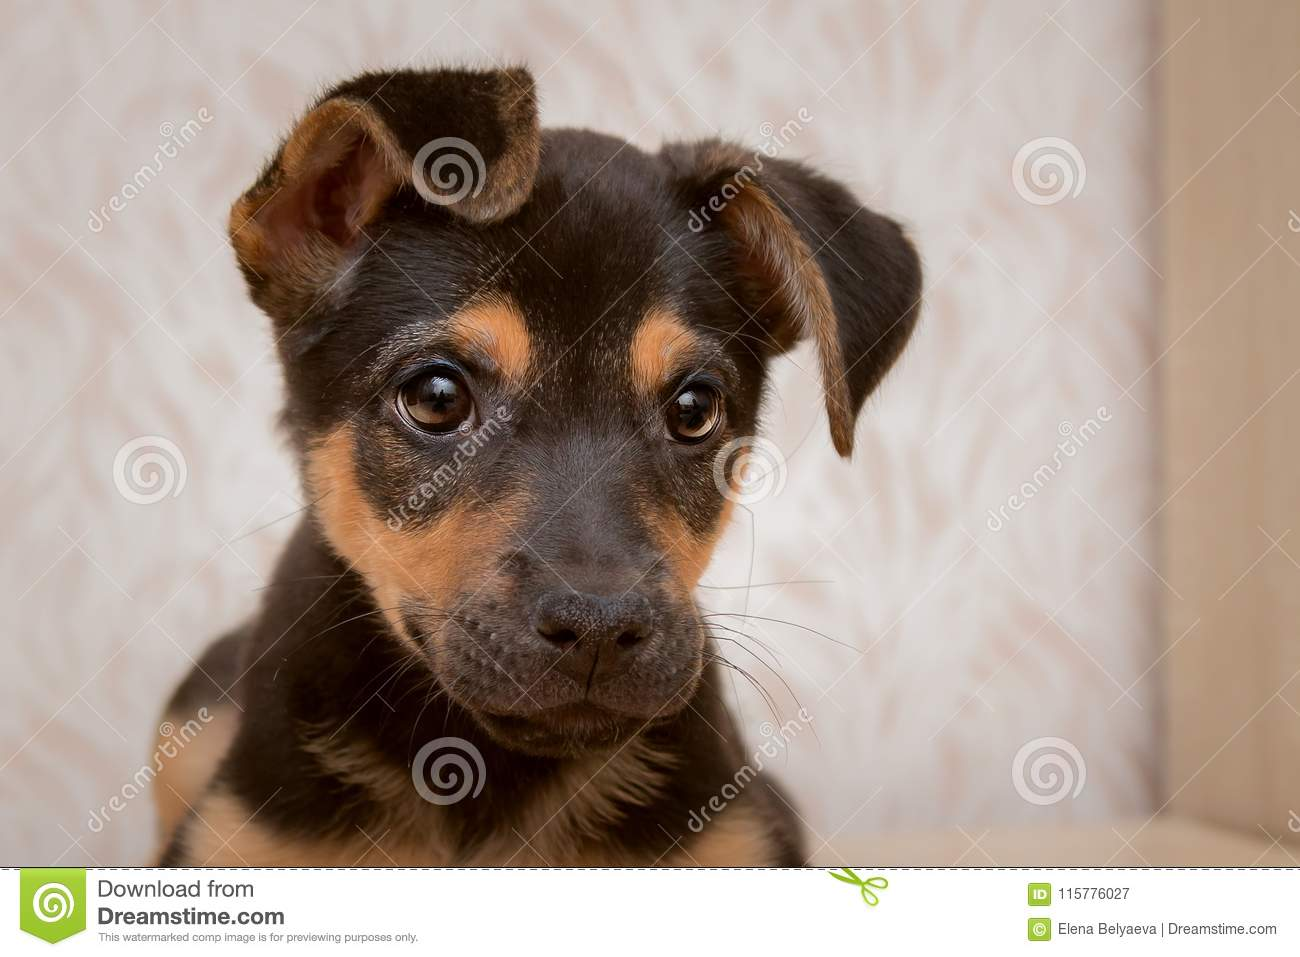 Portrait Of A Cute Puppy Of Small Breed Stock Image Image Of Mammal Brute 115776027